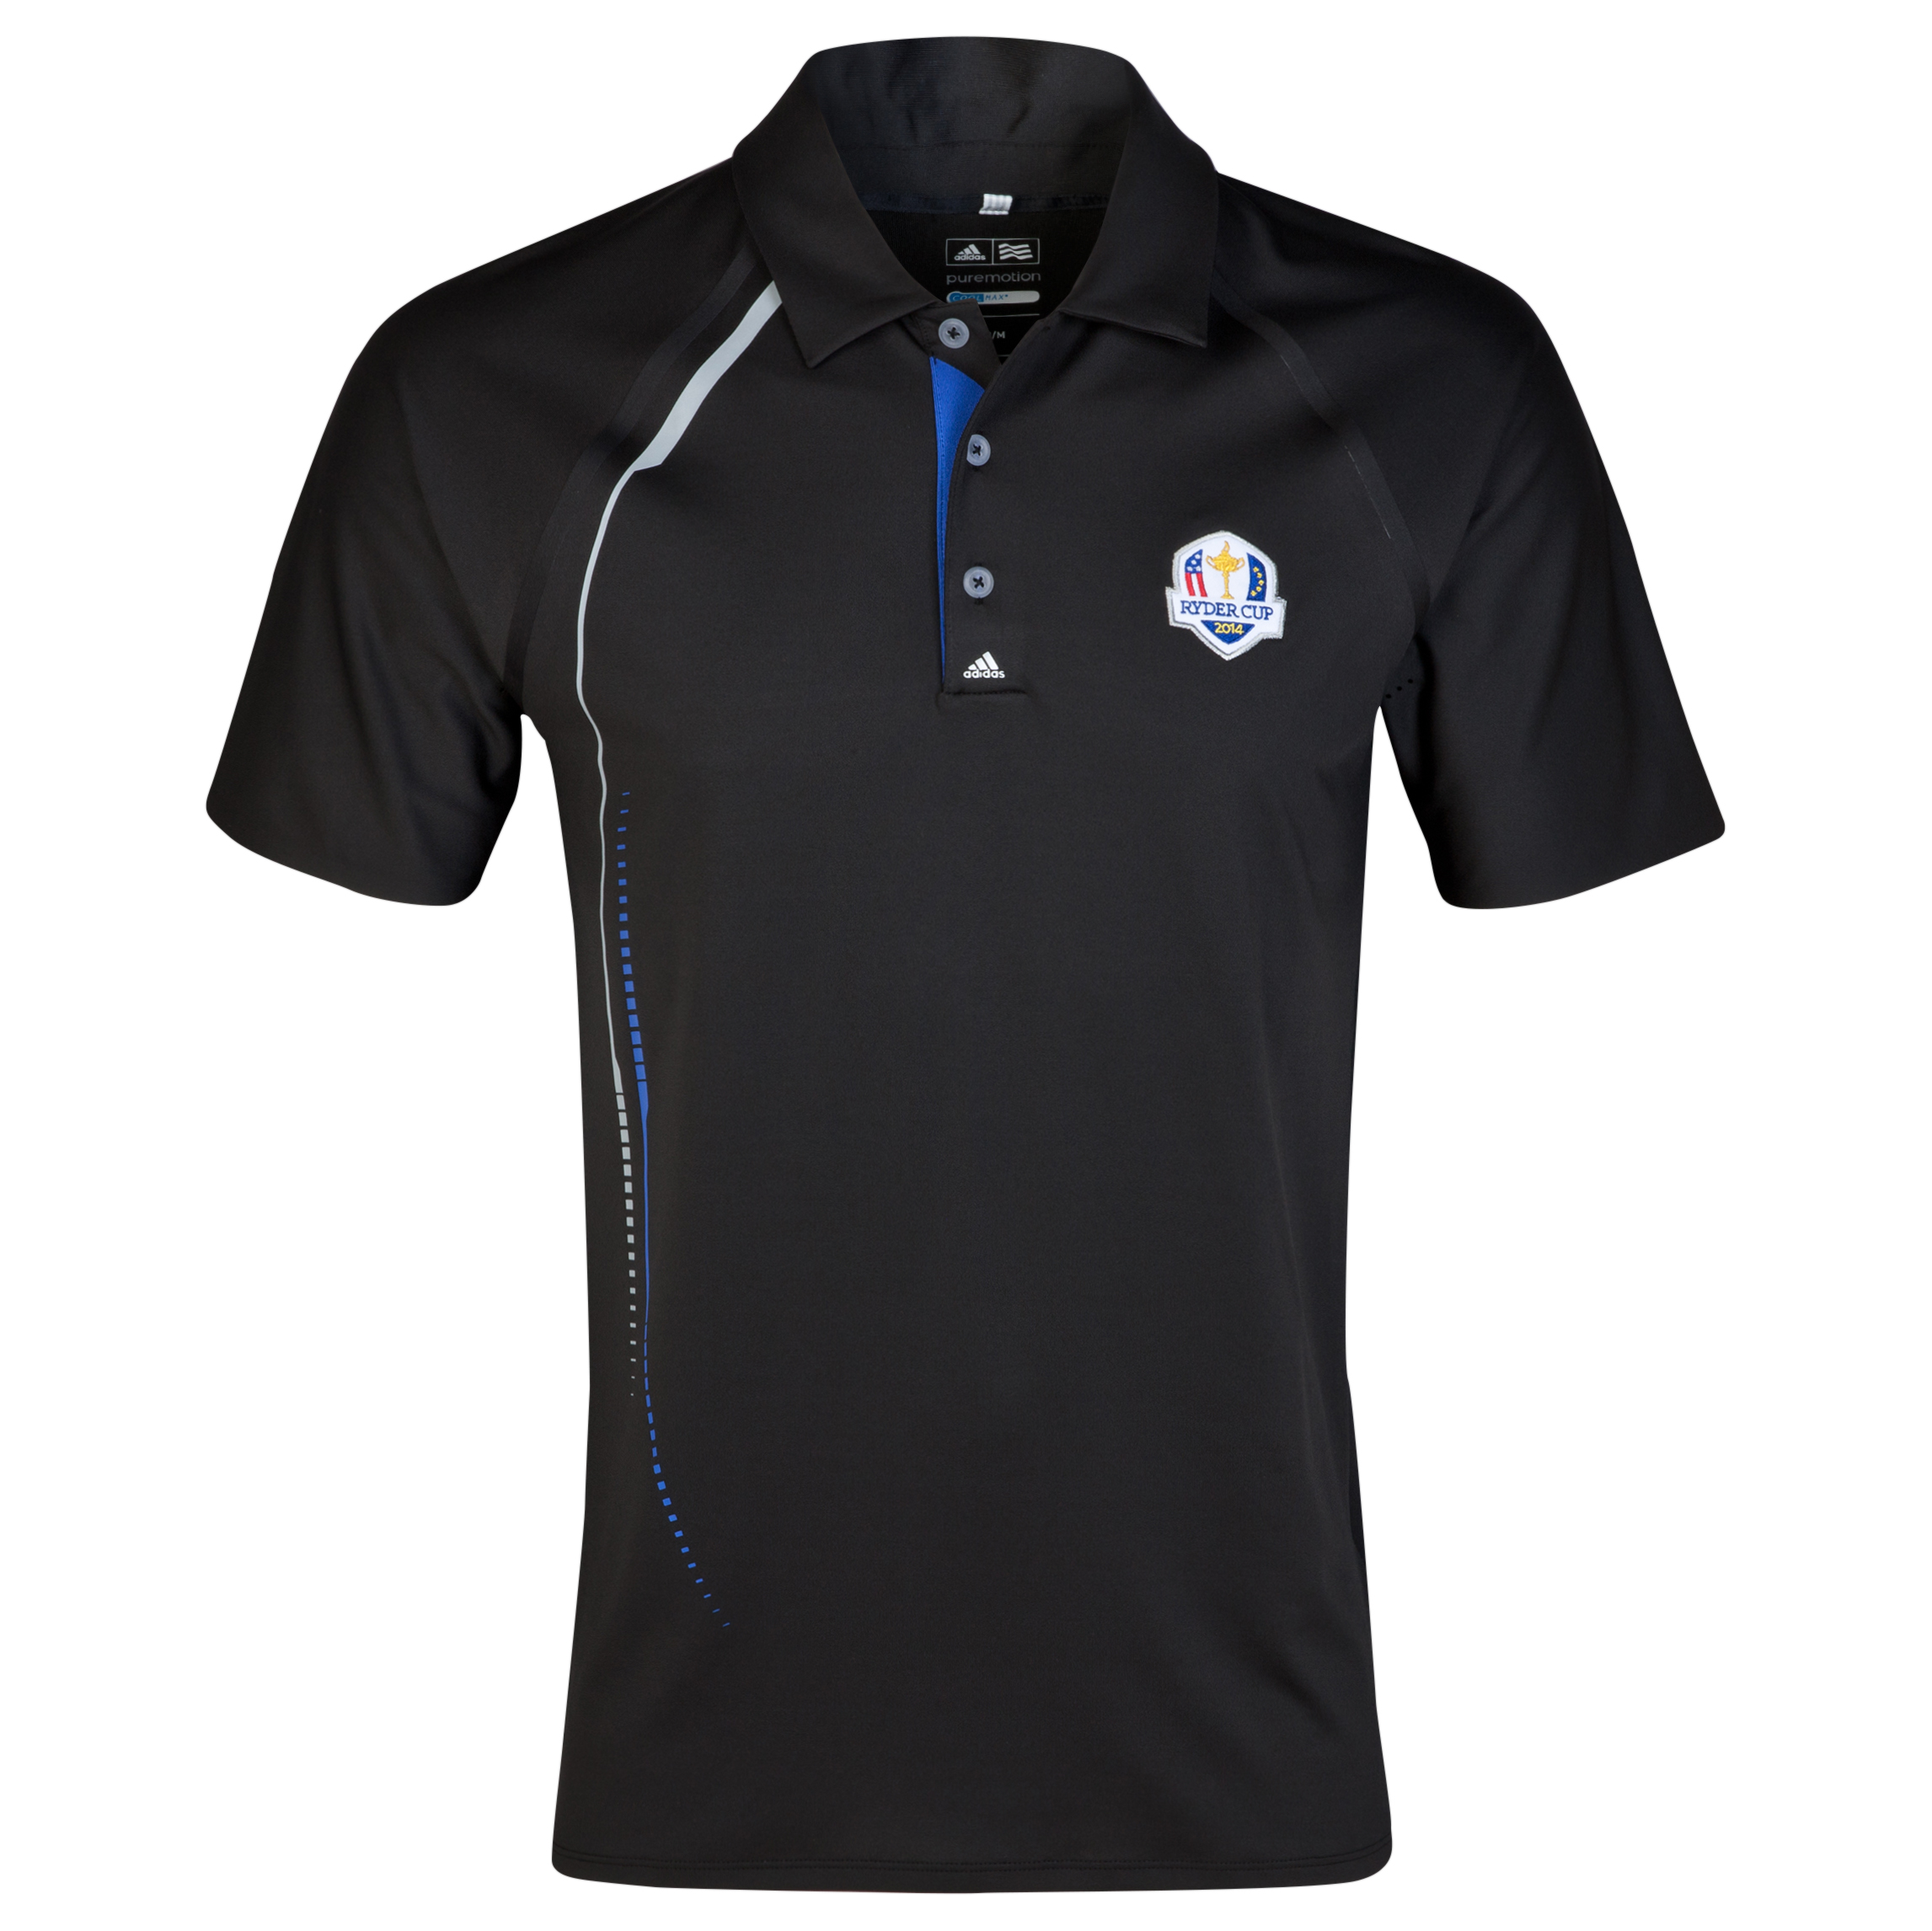 The 2014 Ryder Cup Puremotion Graphic Print Polo Black